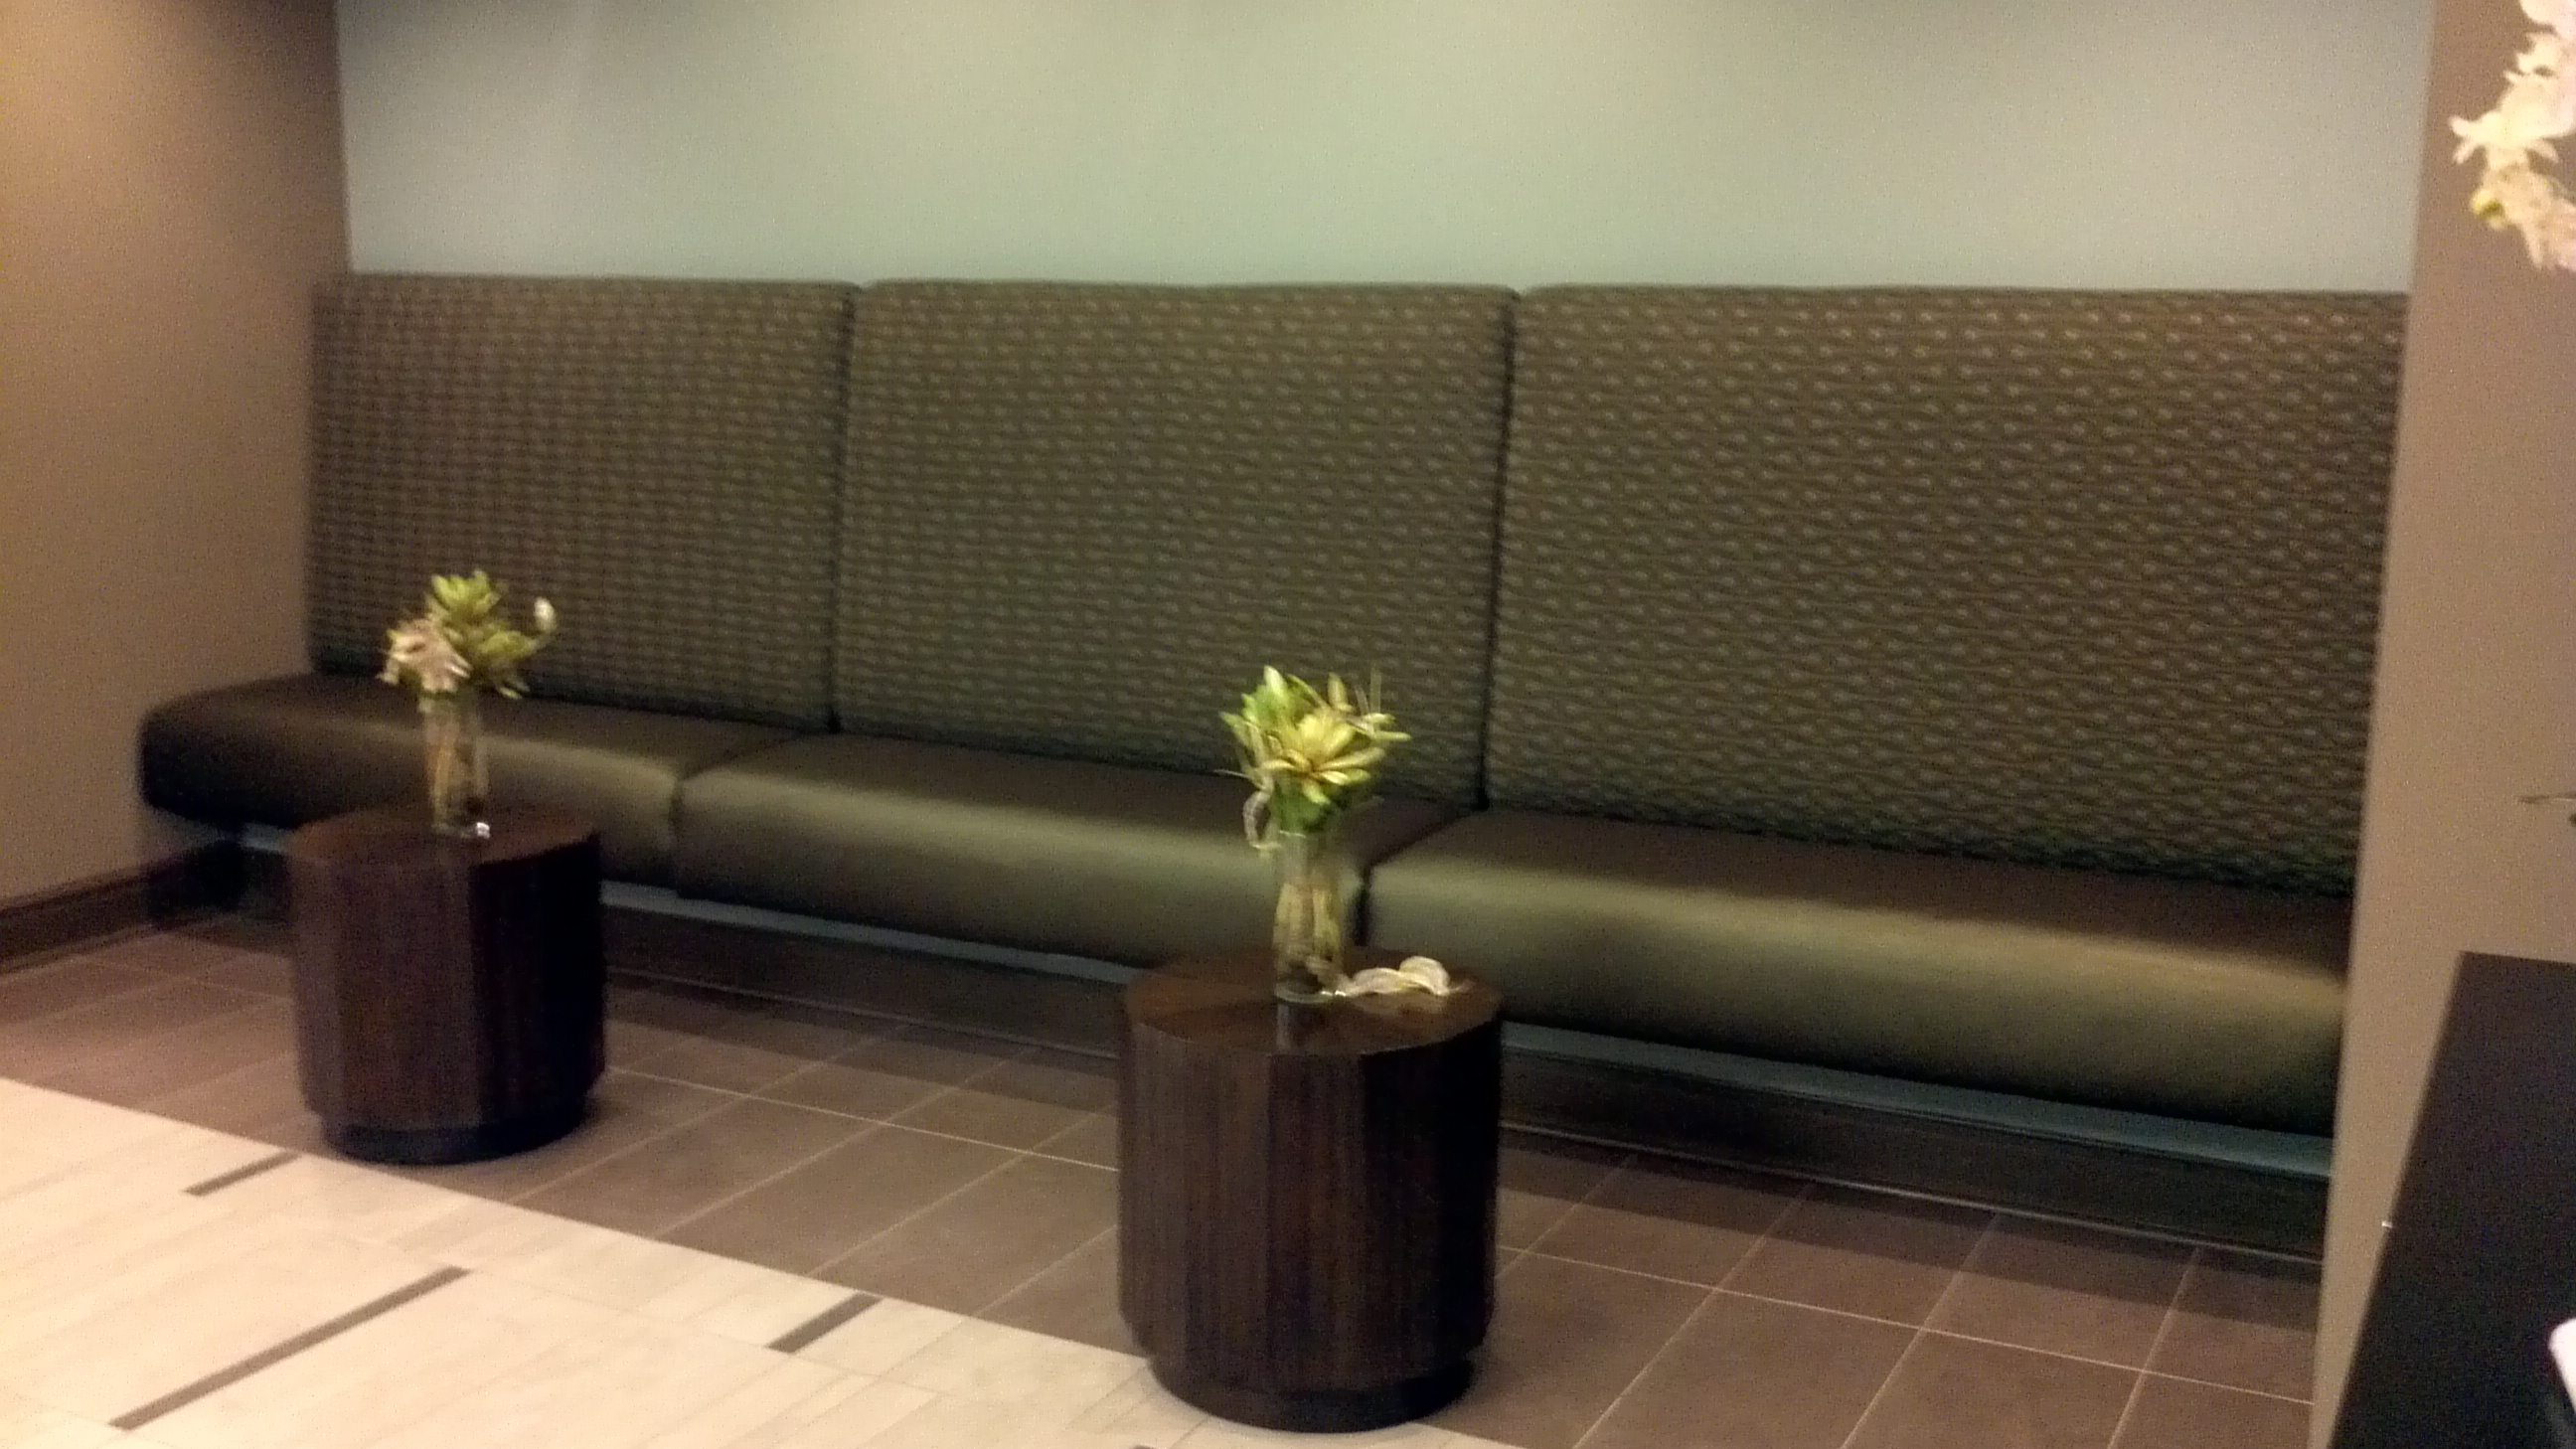 this reception area bench may fit the design scheme but it lacks